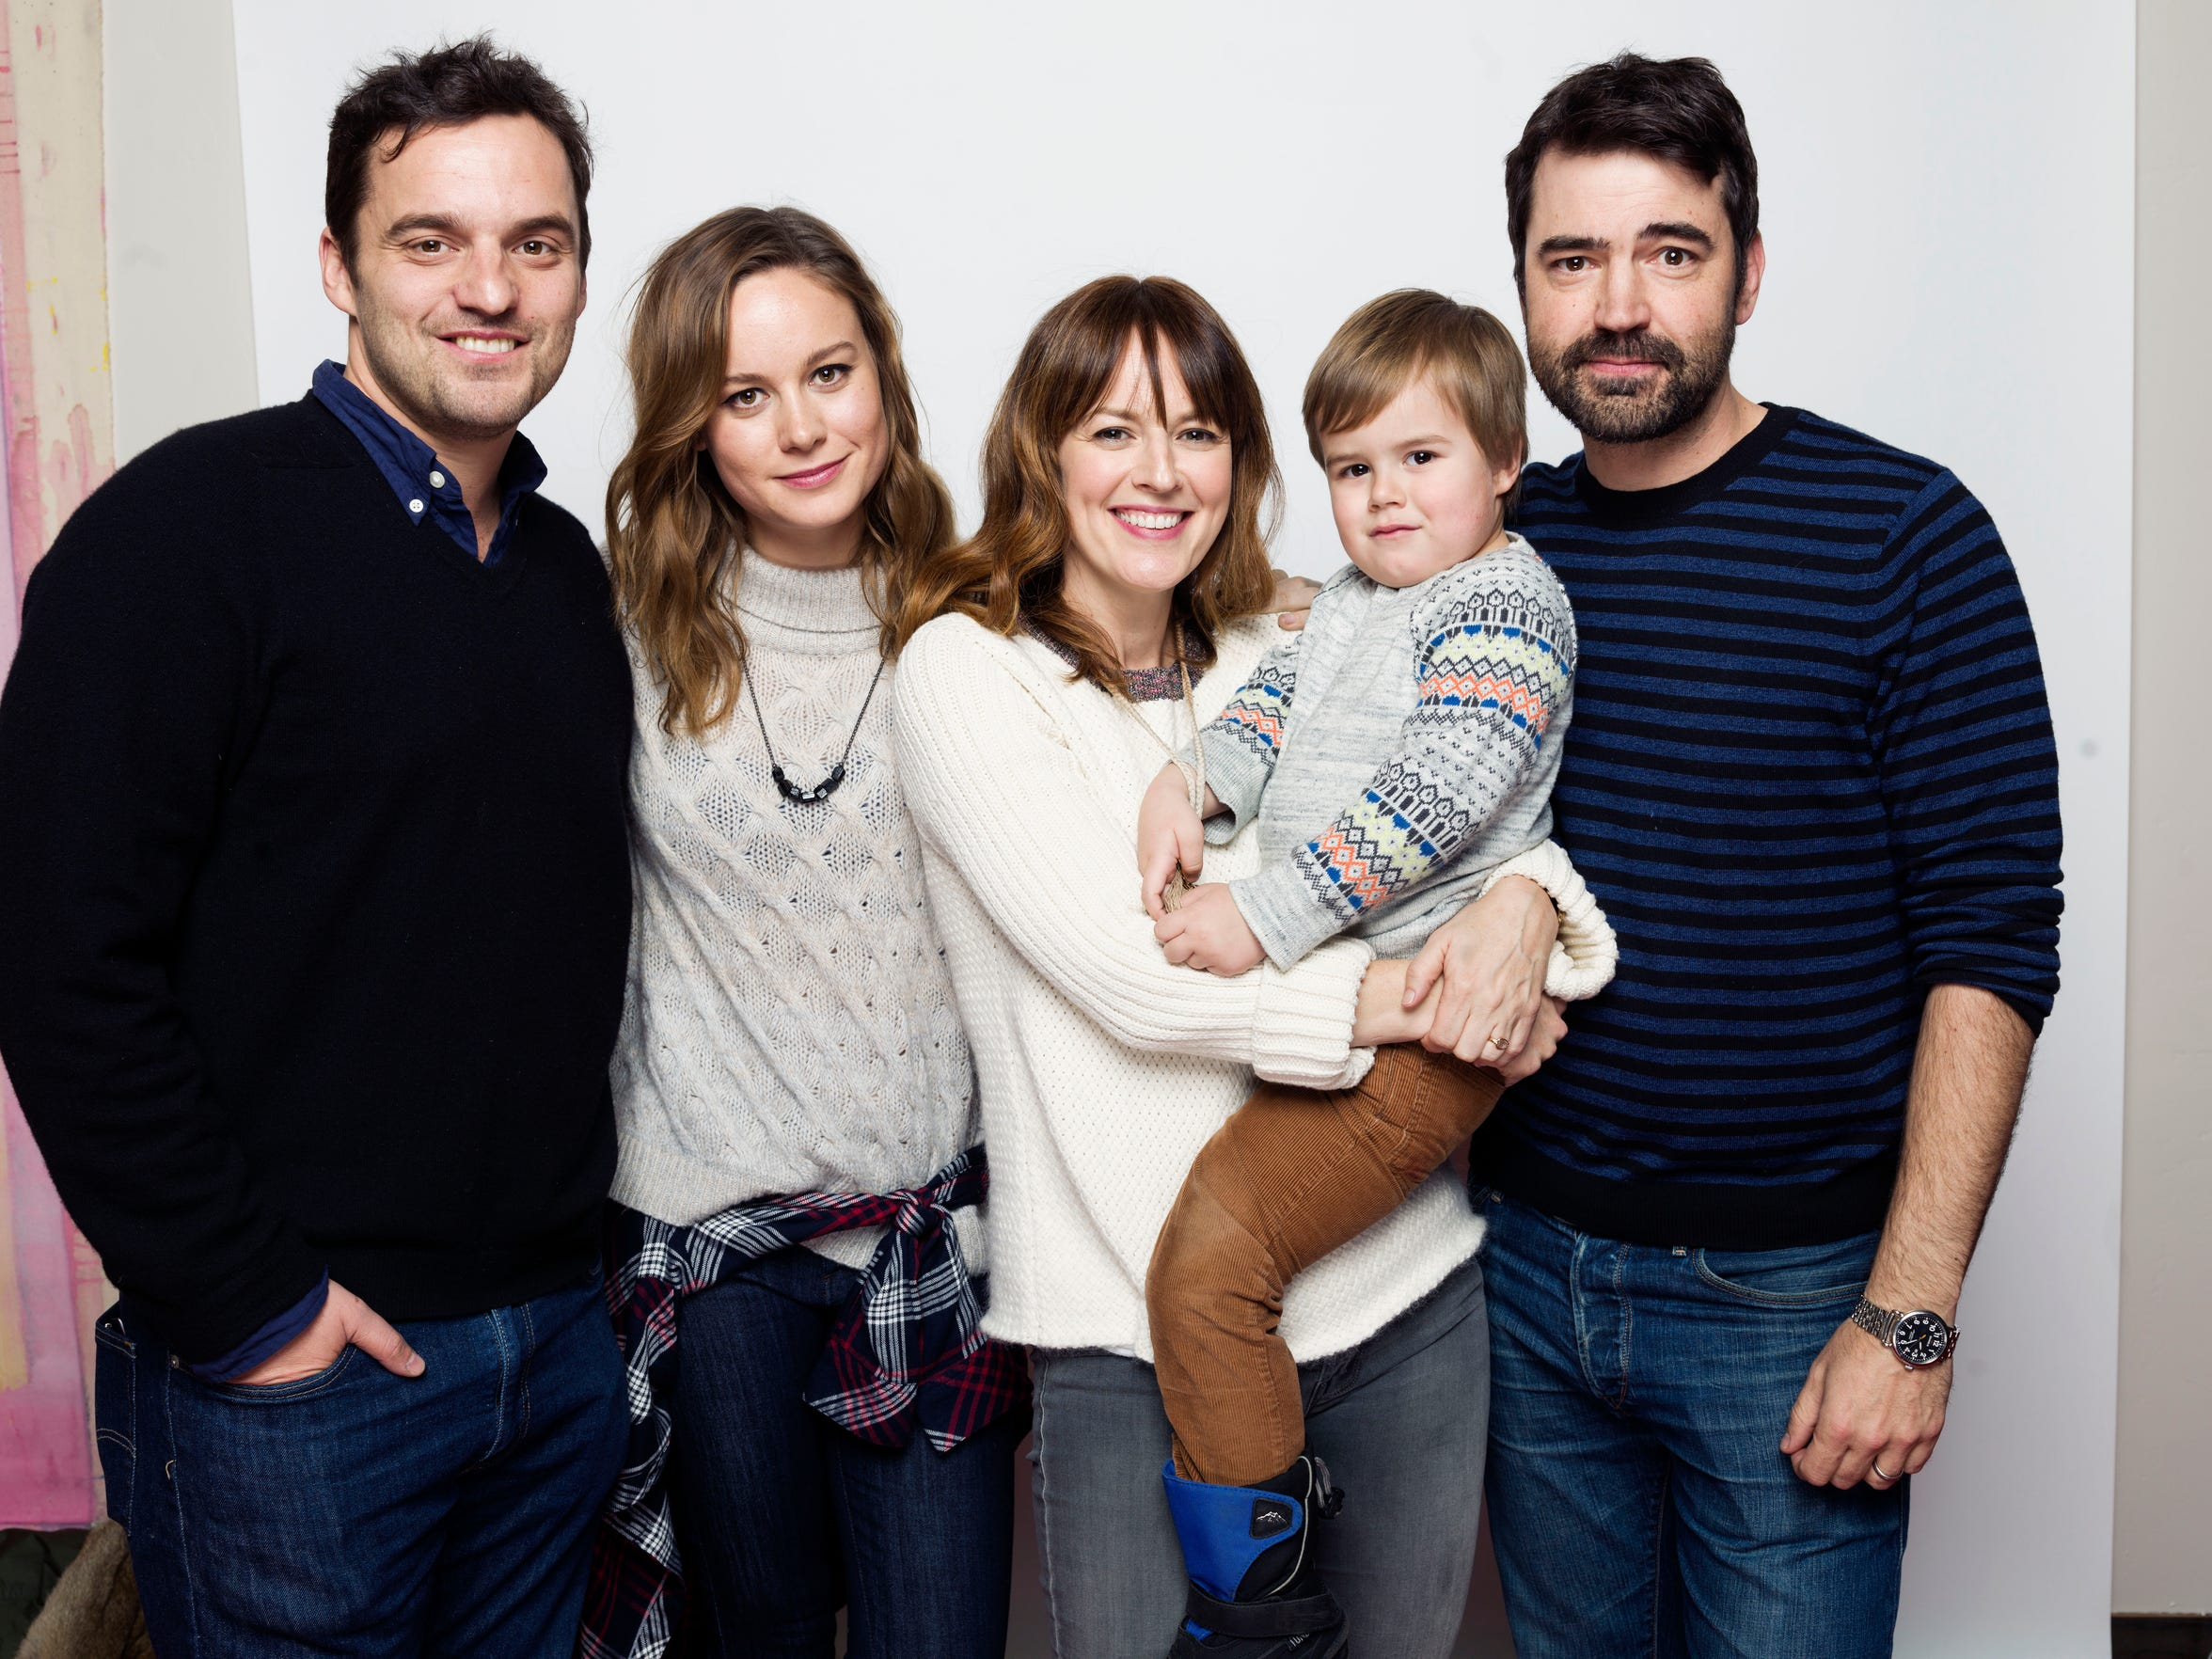 """Jake Johnson, from left, Brie Larson, Rosemarie DeWitt, Jude Swanberg and Ron Livingston pose for a portrait to promote the film, """"Digging for Fire"""", at the Eddie Bauer Adventure House during the Sundance Film Festival on Monday, Jan. 26, 2015, in Park City, Utah. (Photo by Victoria Will/Invision/AP)"""